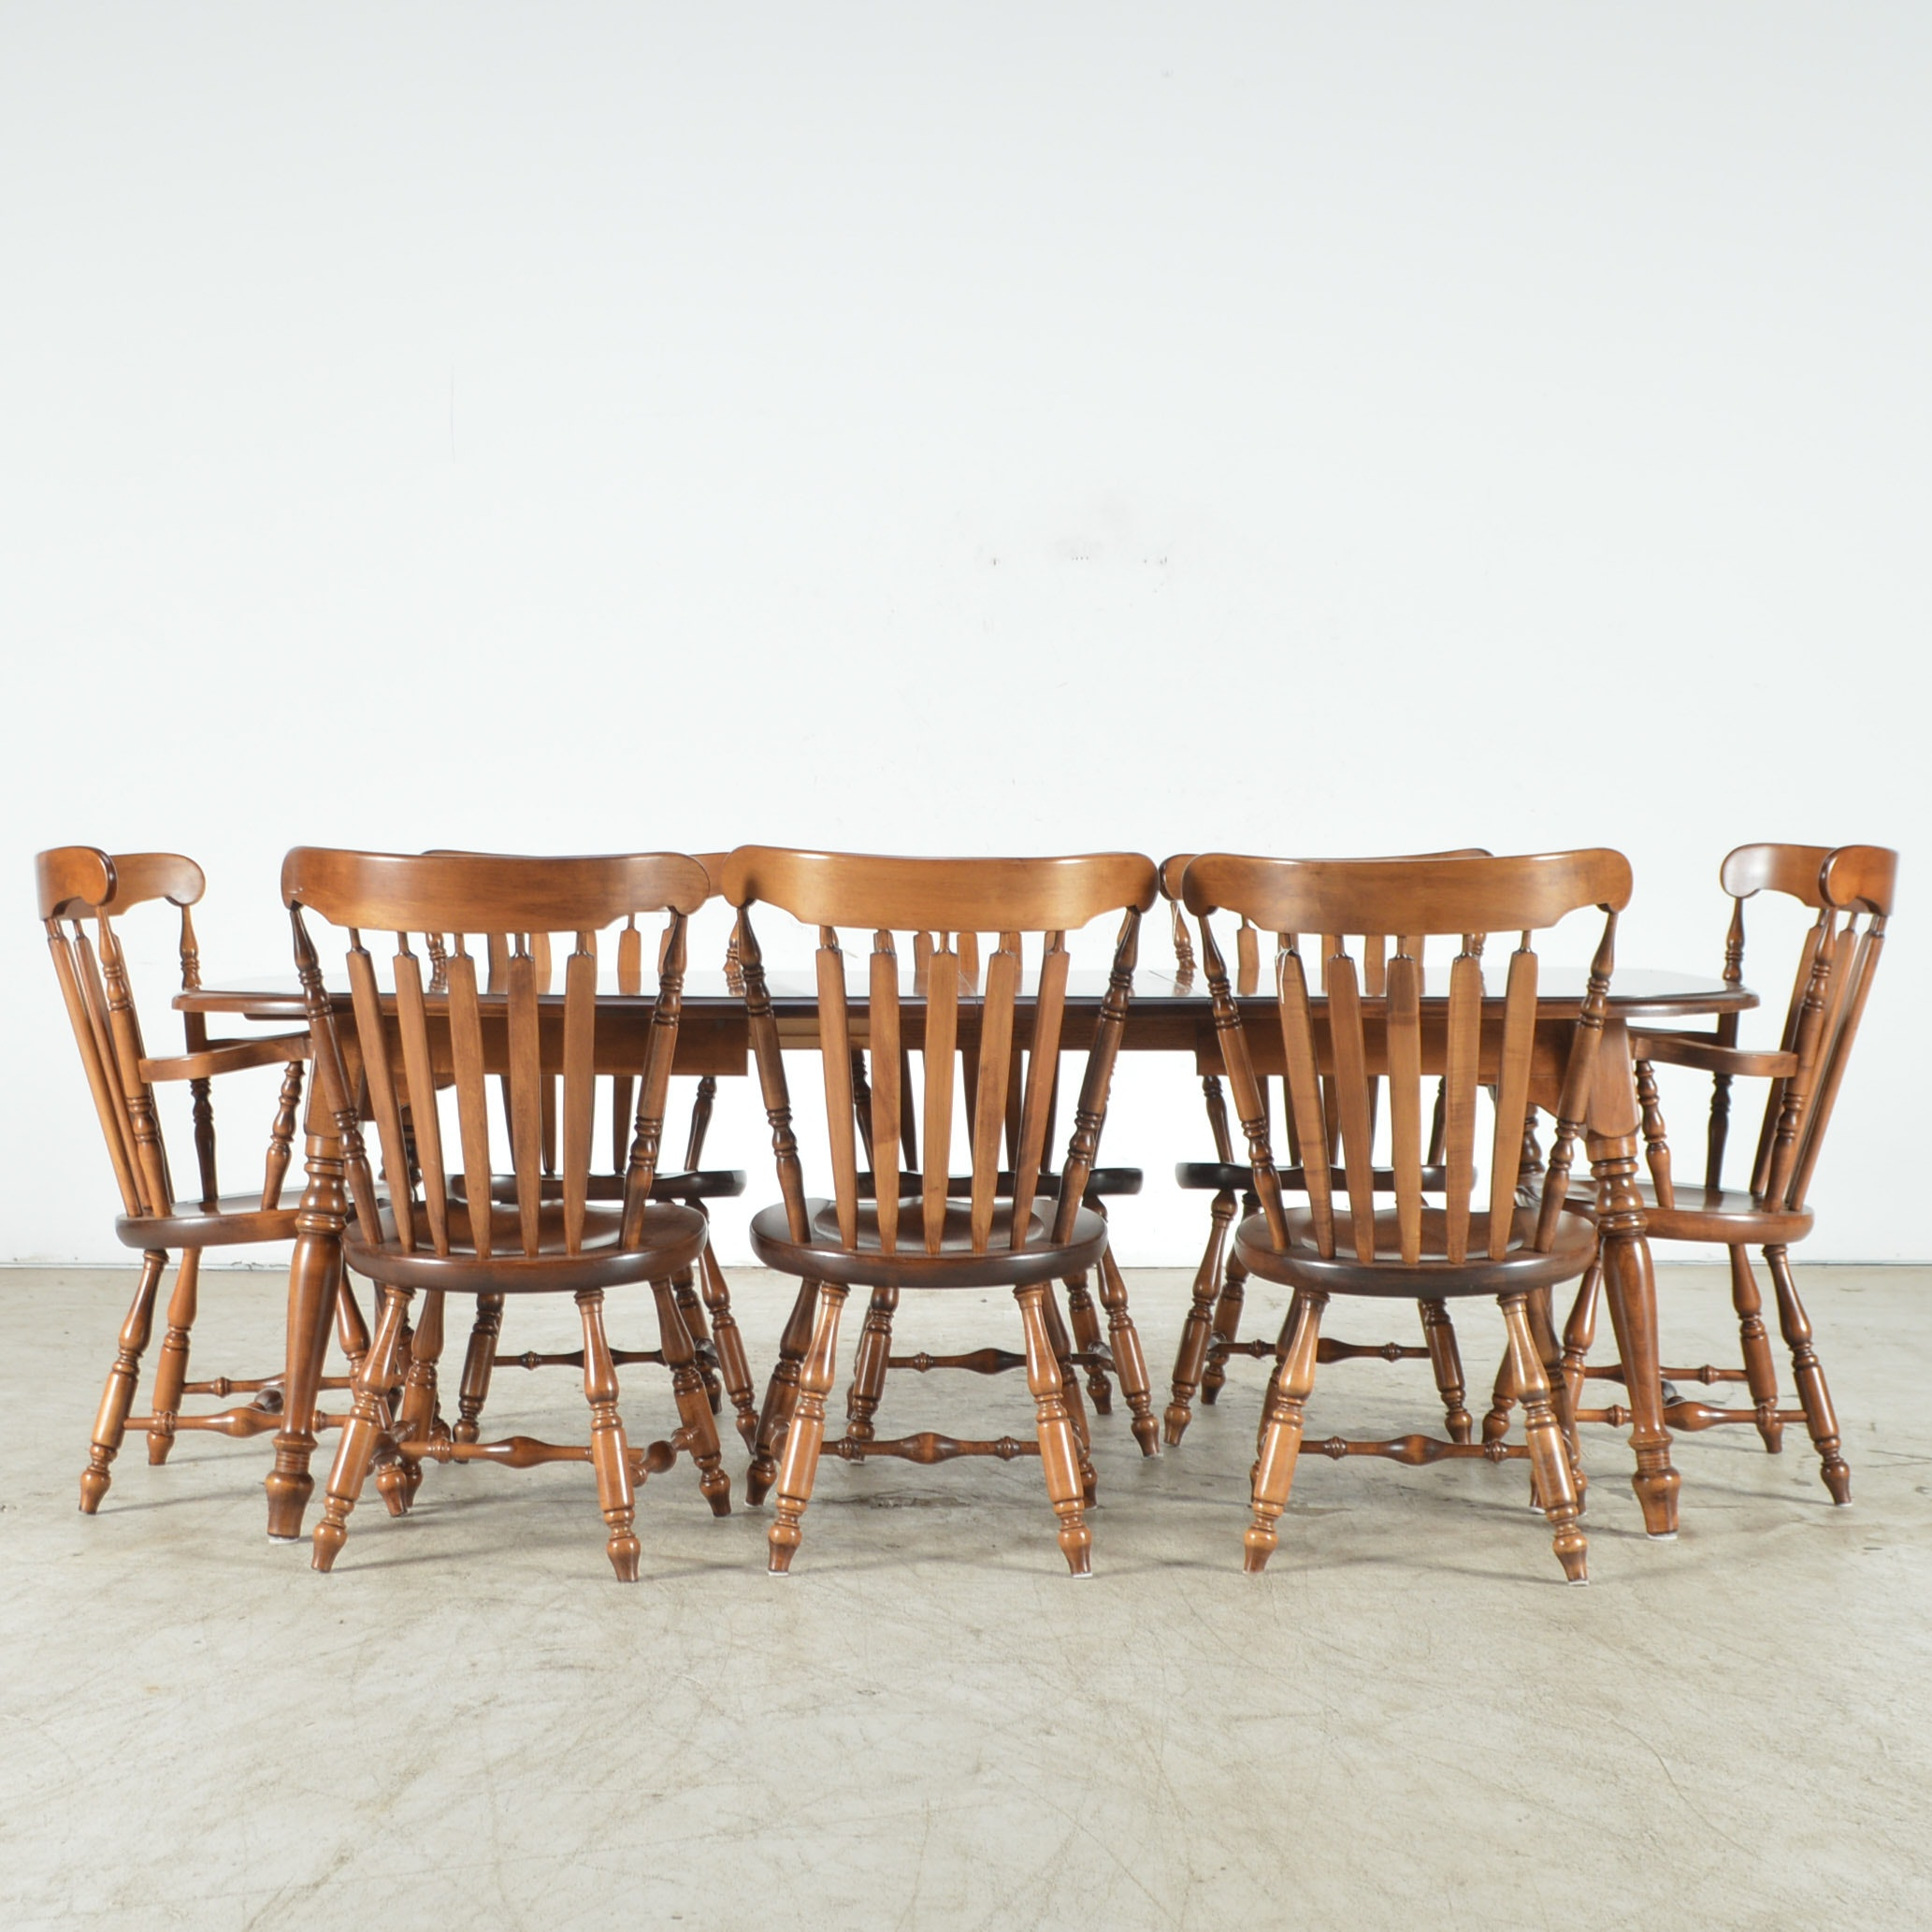 Maple Kitchen Table With Chair And Bench Ebth: Rock Maple Dining Table And Eight Chairs : EBTH